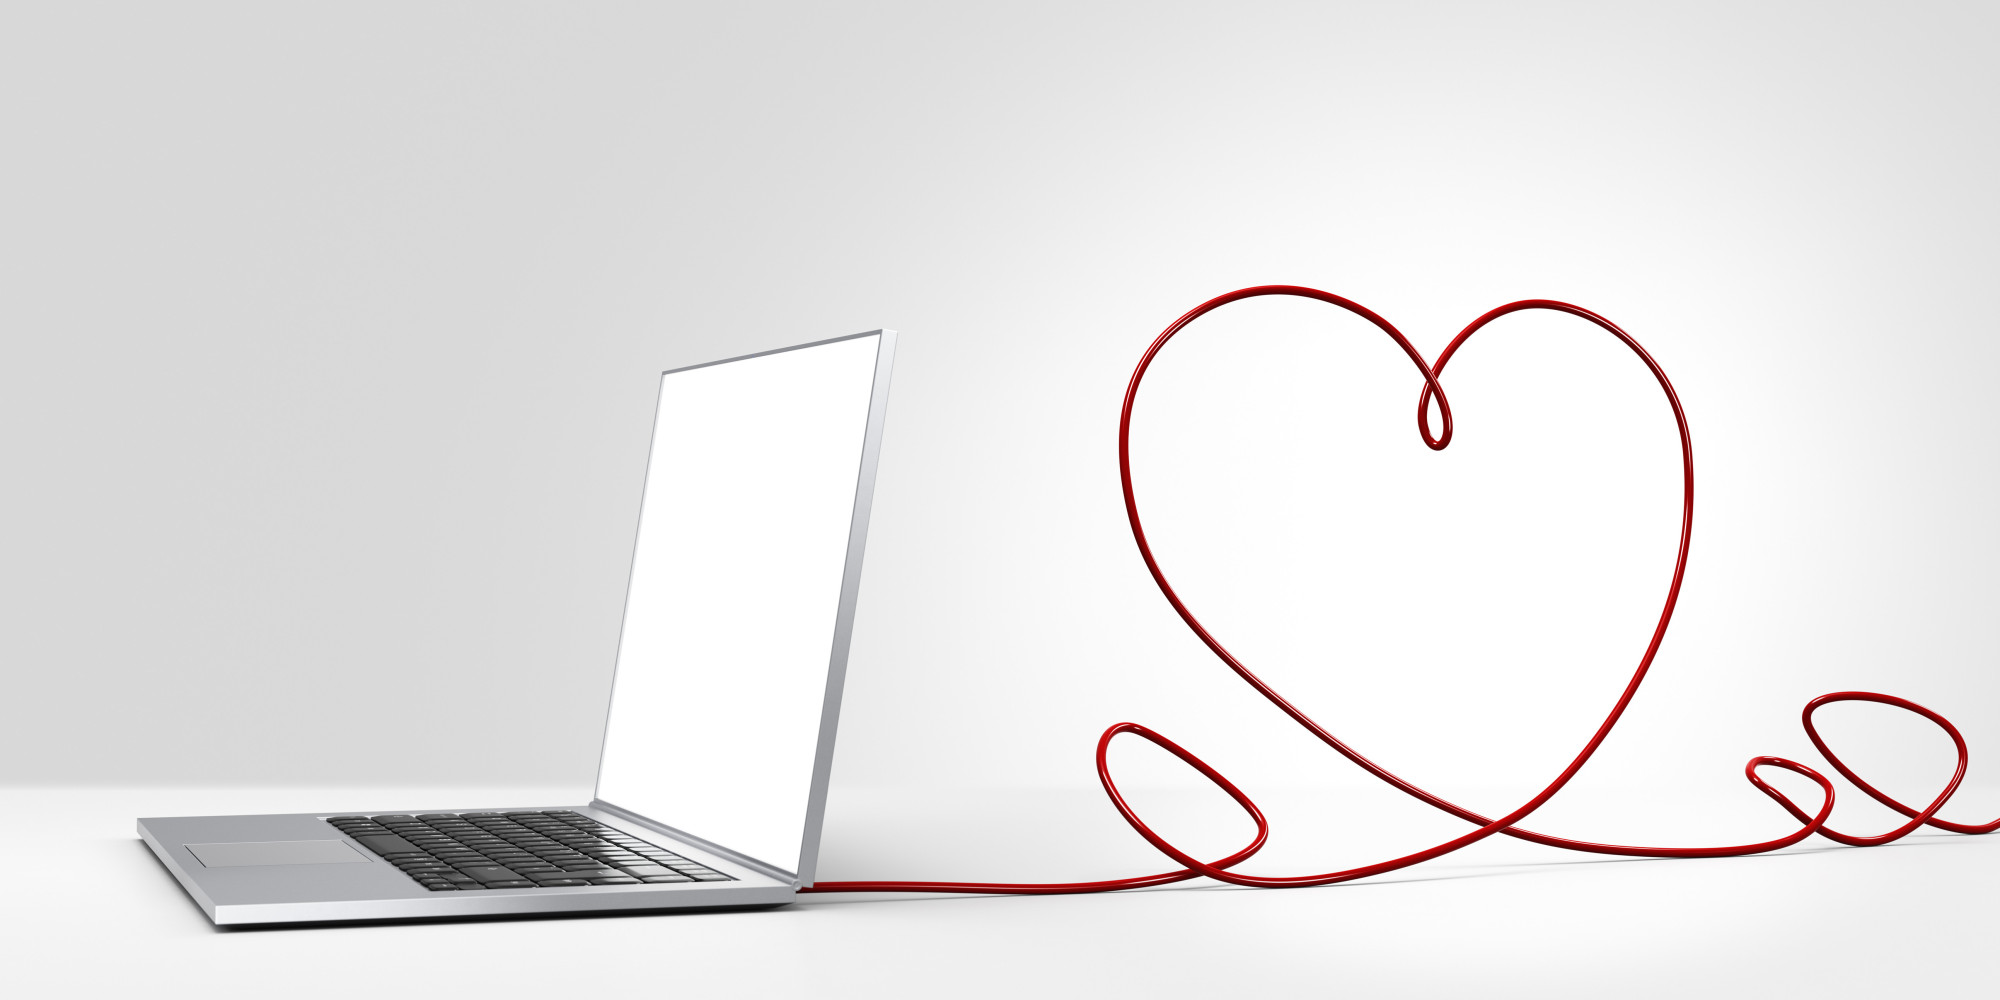 Laptop computer with cable forming a heart